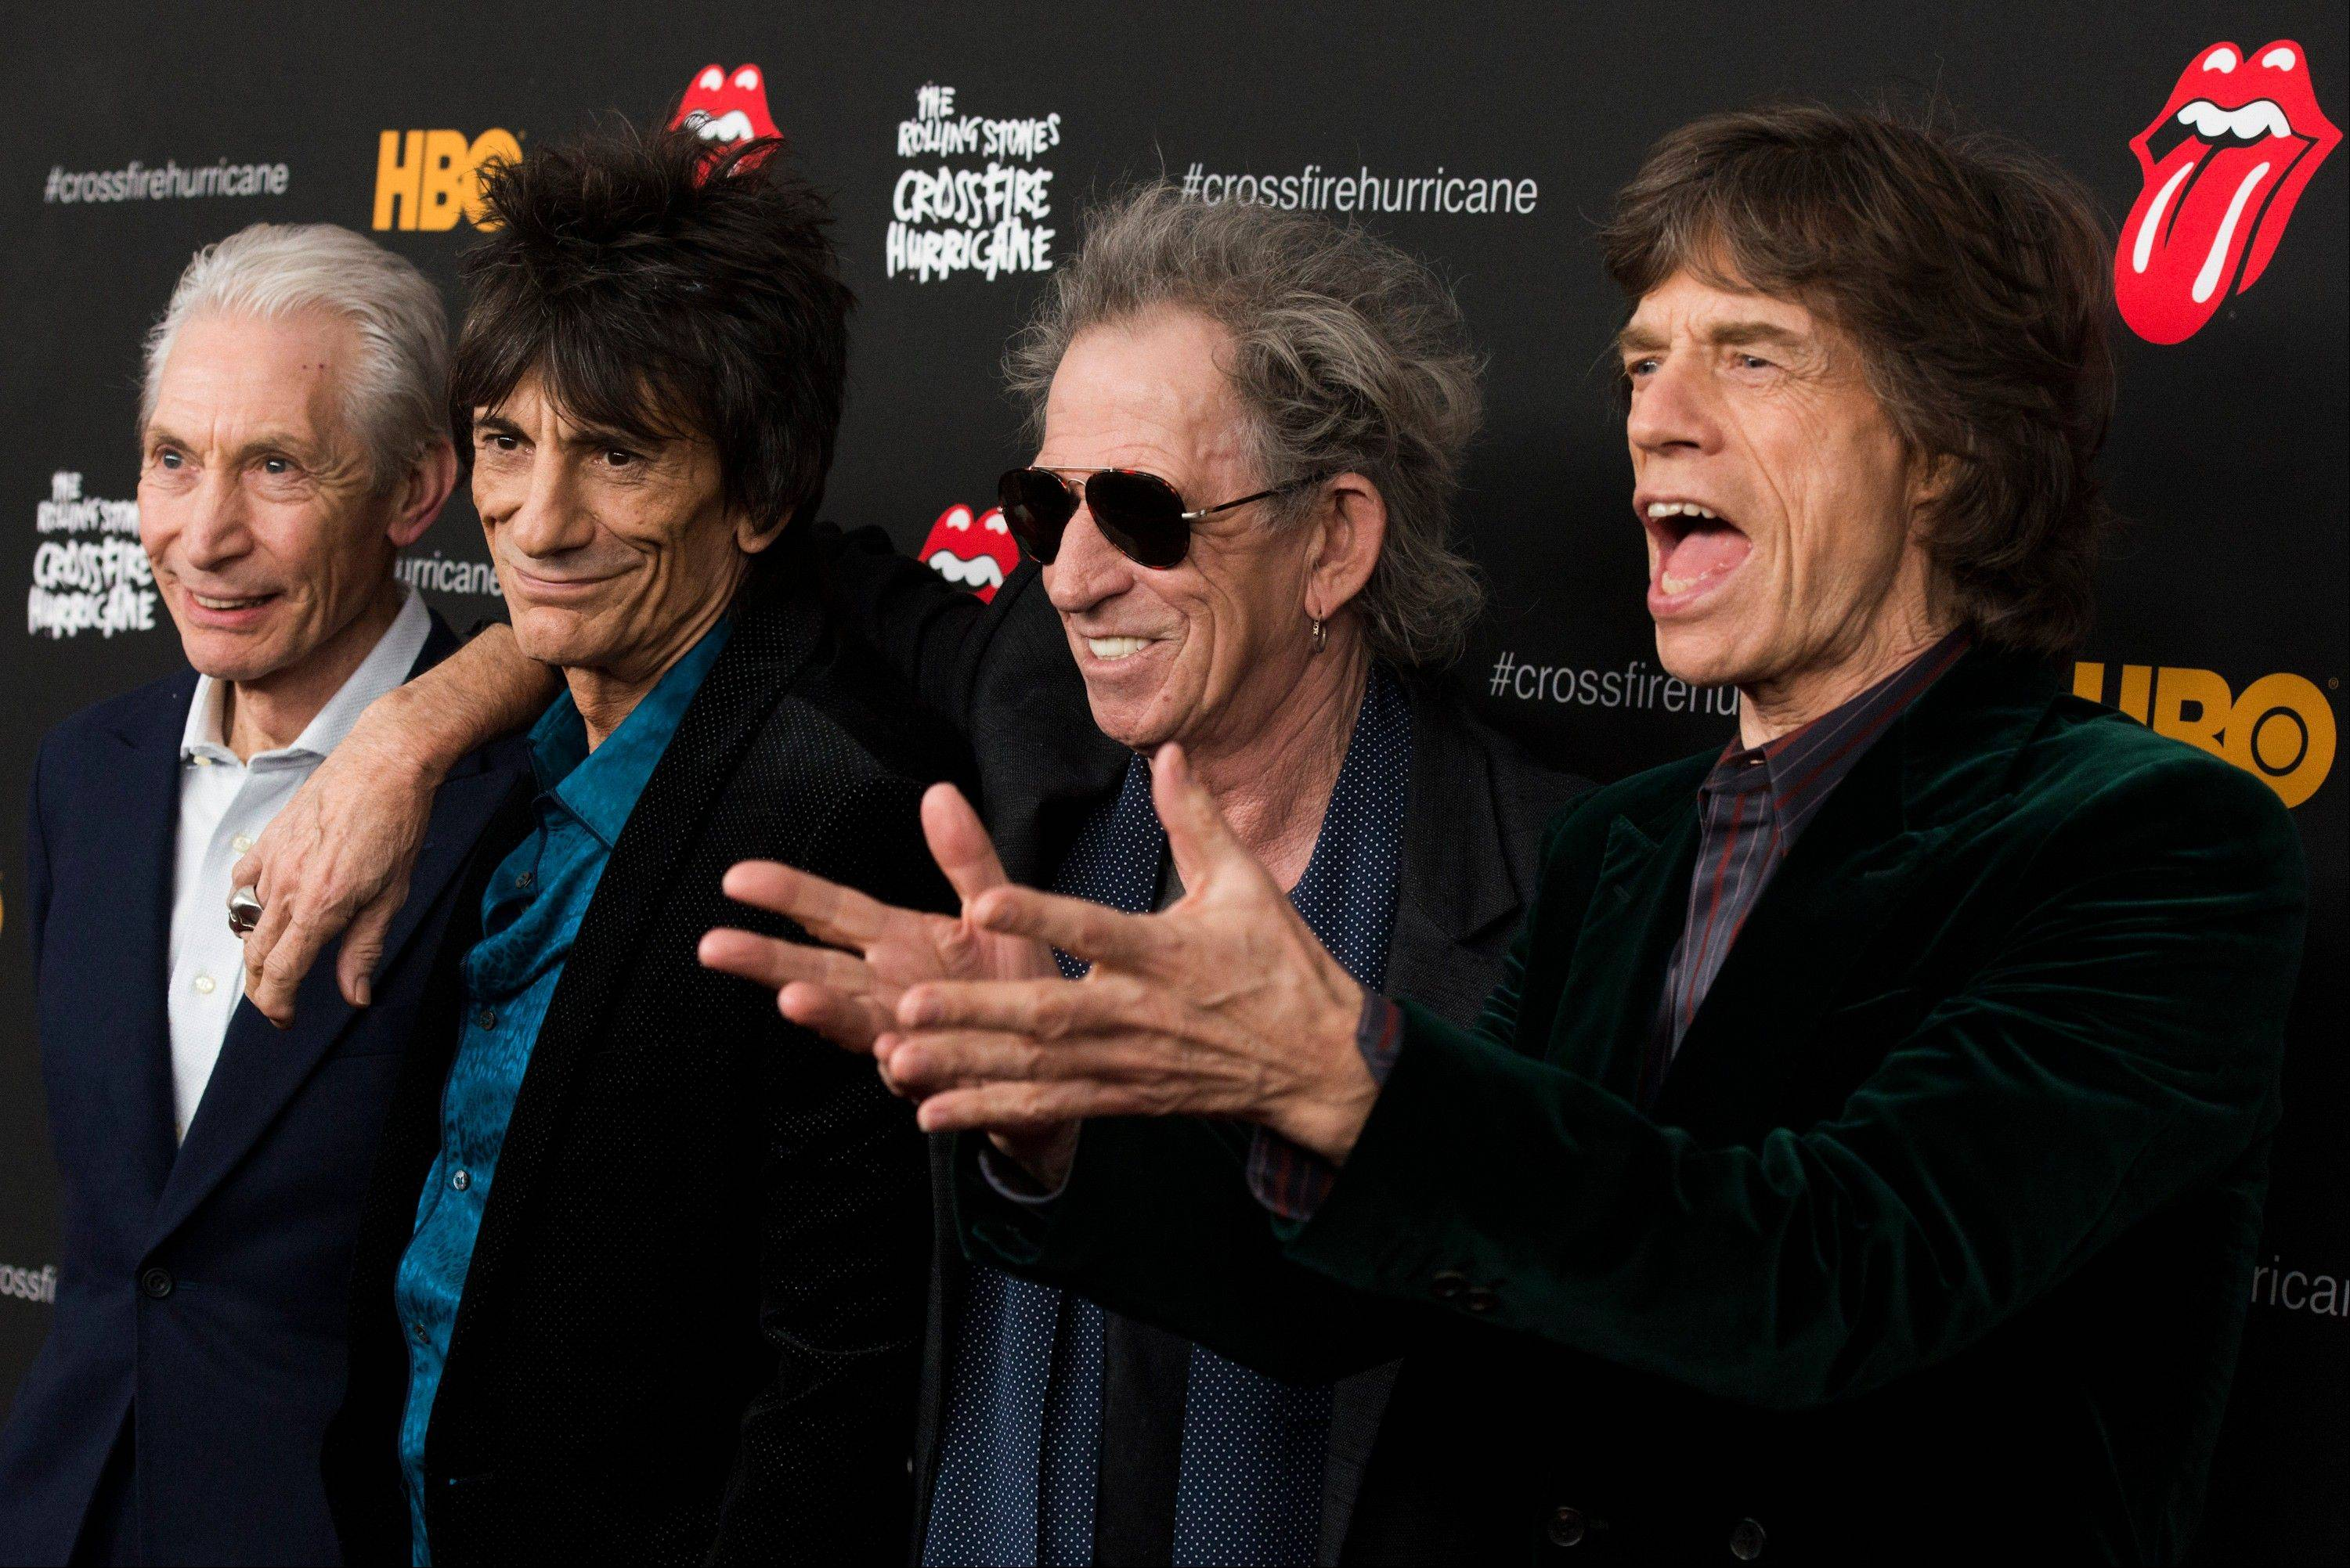 Rolling Stones band members, from left, Charlie Watts, Ronnie Wood, Keith Richards and Mick Jagger attend �The Rolling Stones Crossfire Hurricane� premiere in New York.